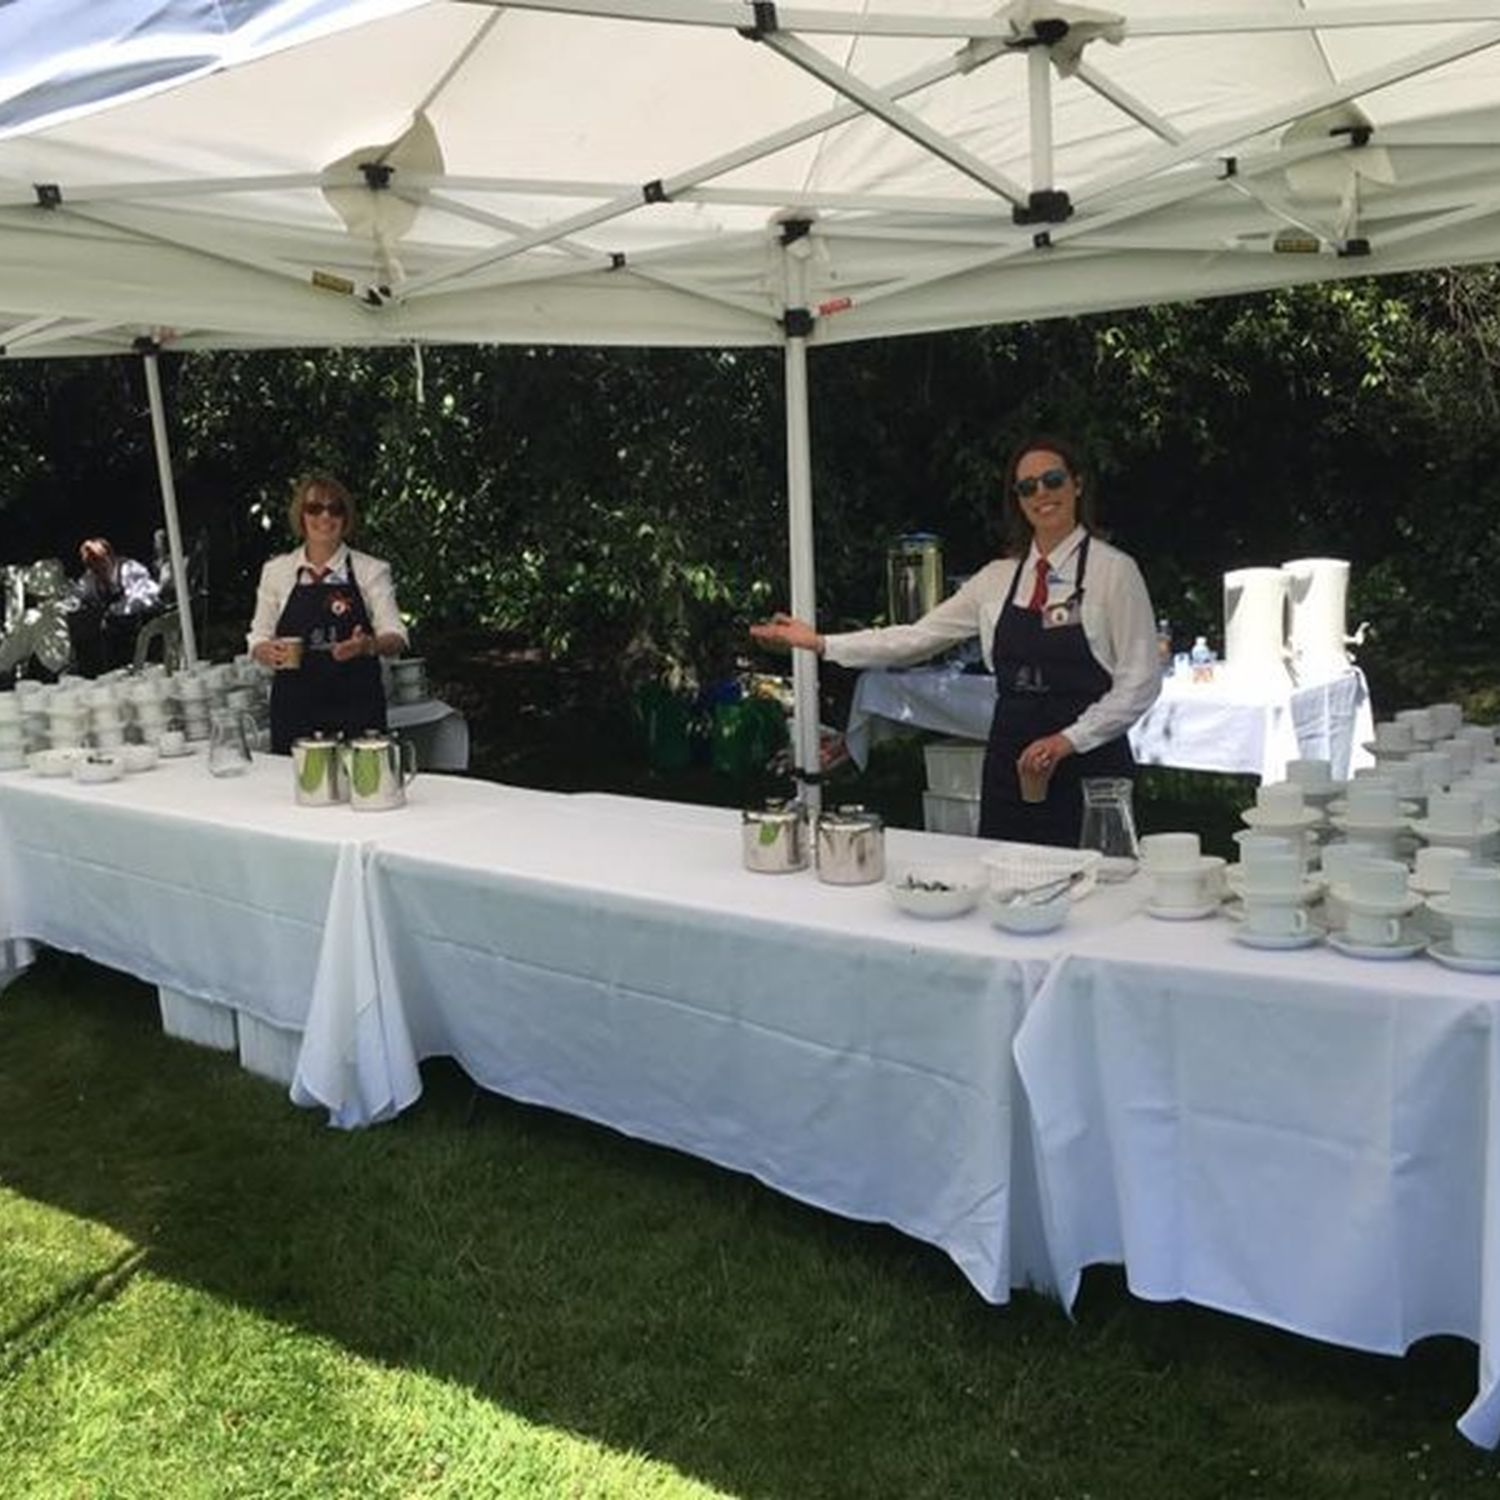 Canberra Luncheon preparation with staff